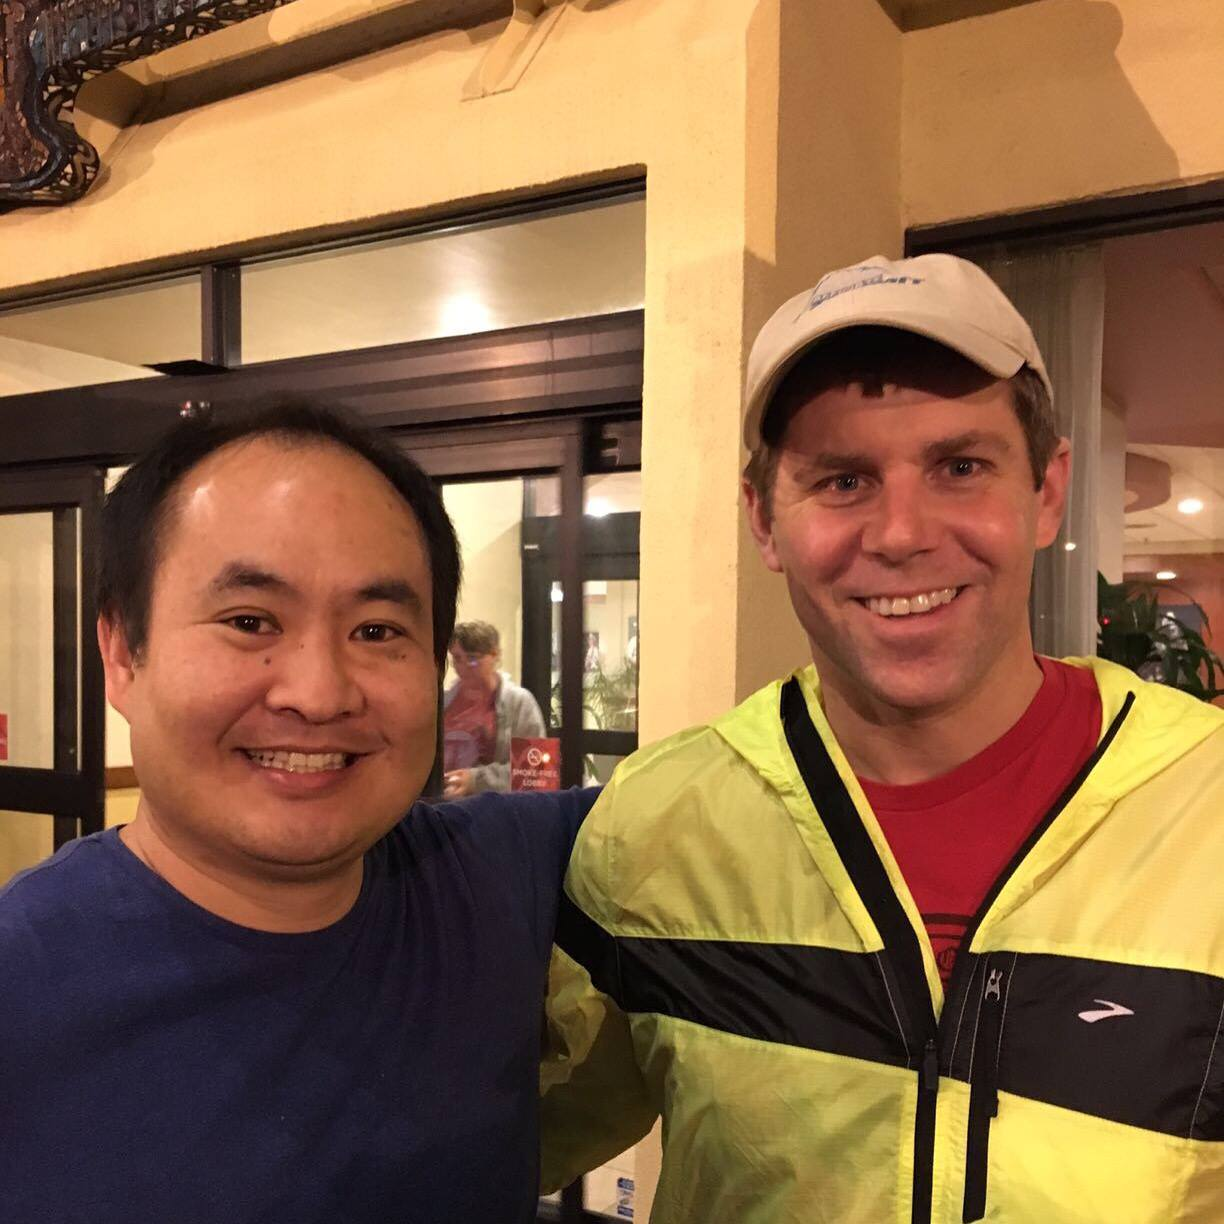 Dennis Yu and Shawn Collins